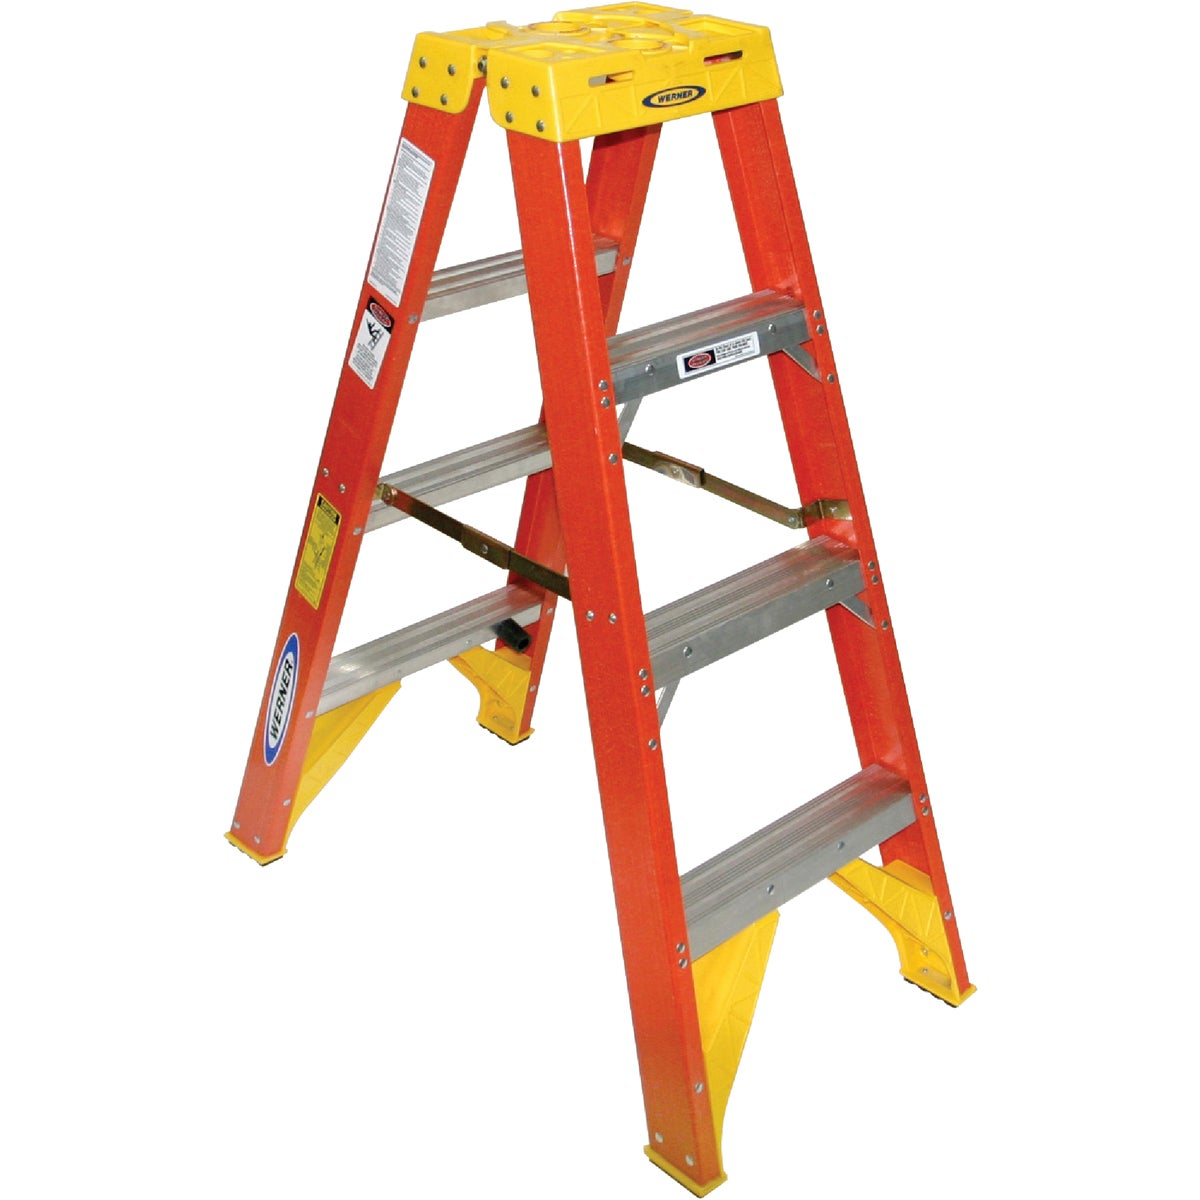 T-1A 4' TWIN STEPLADDER